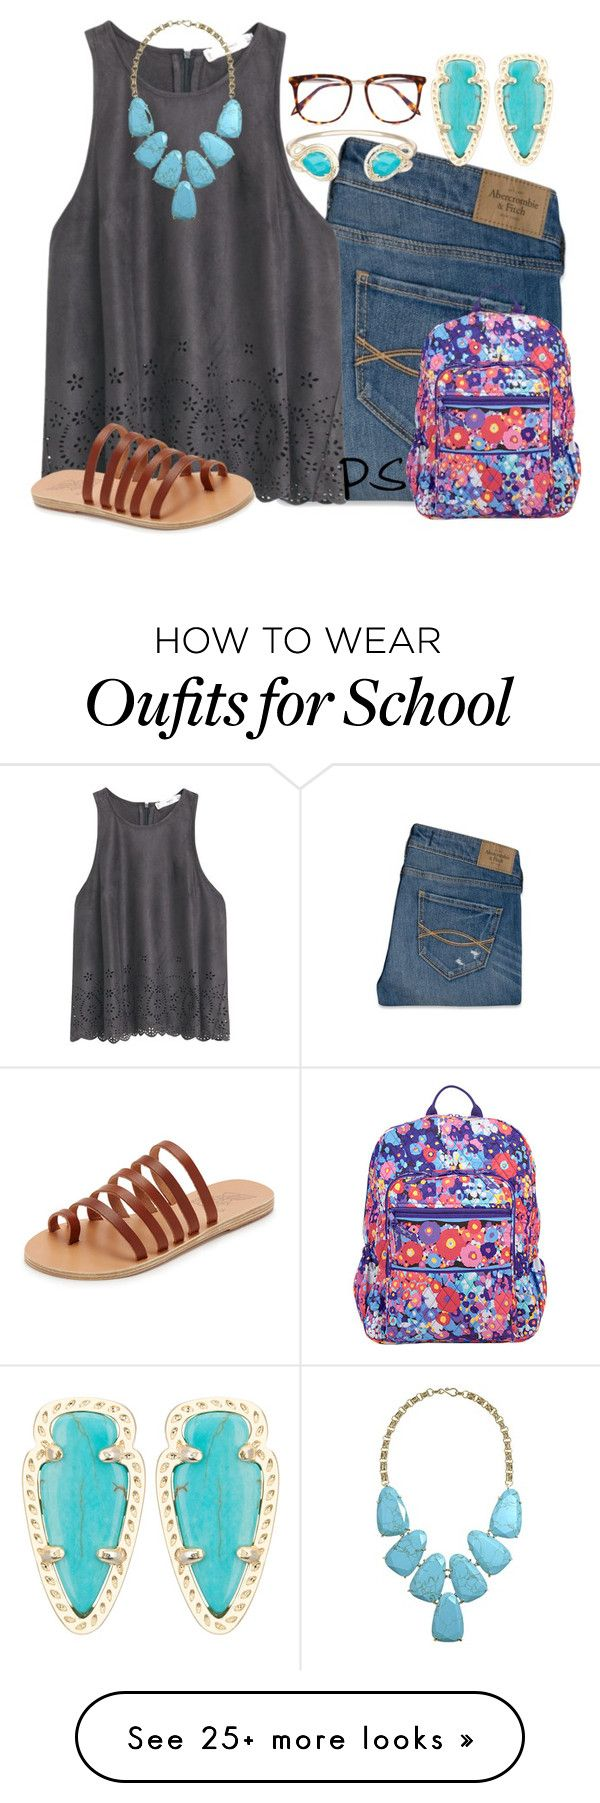 142 best Fashion images on Pinterest | Cute outfits, Cute clothes ...